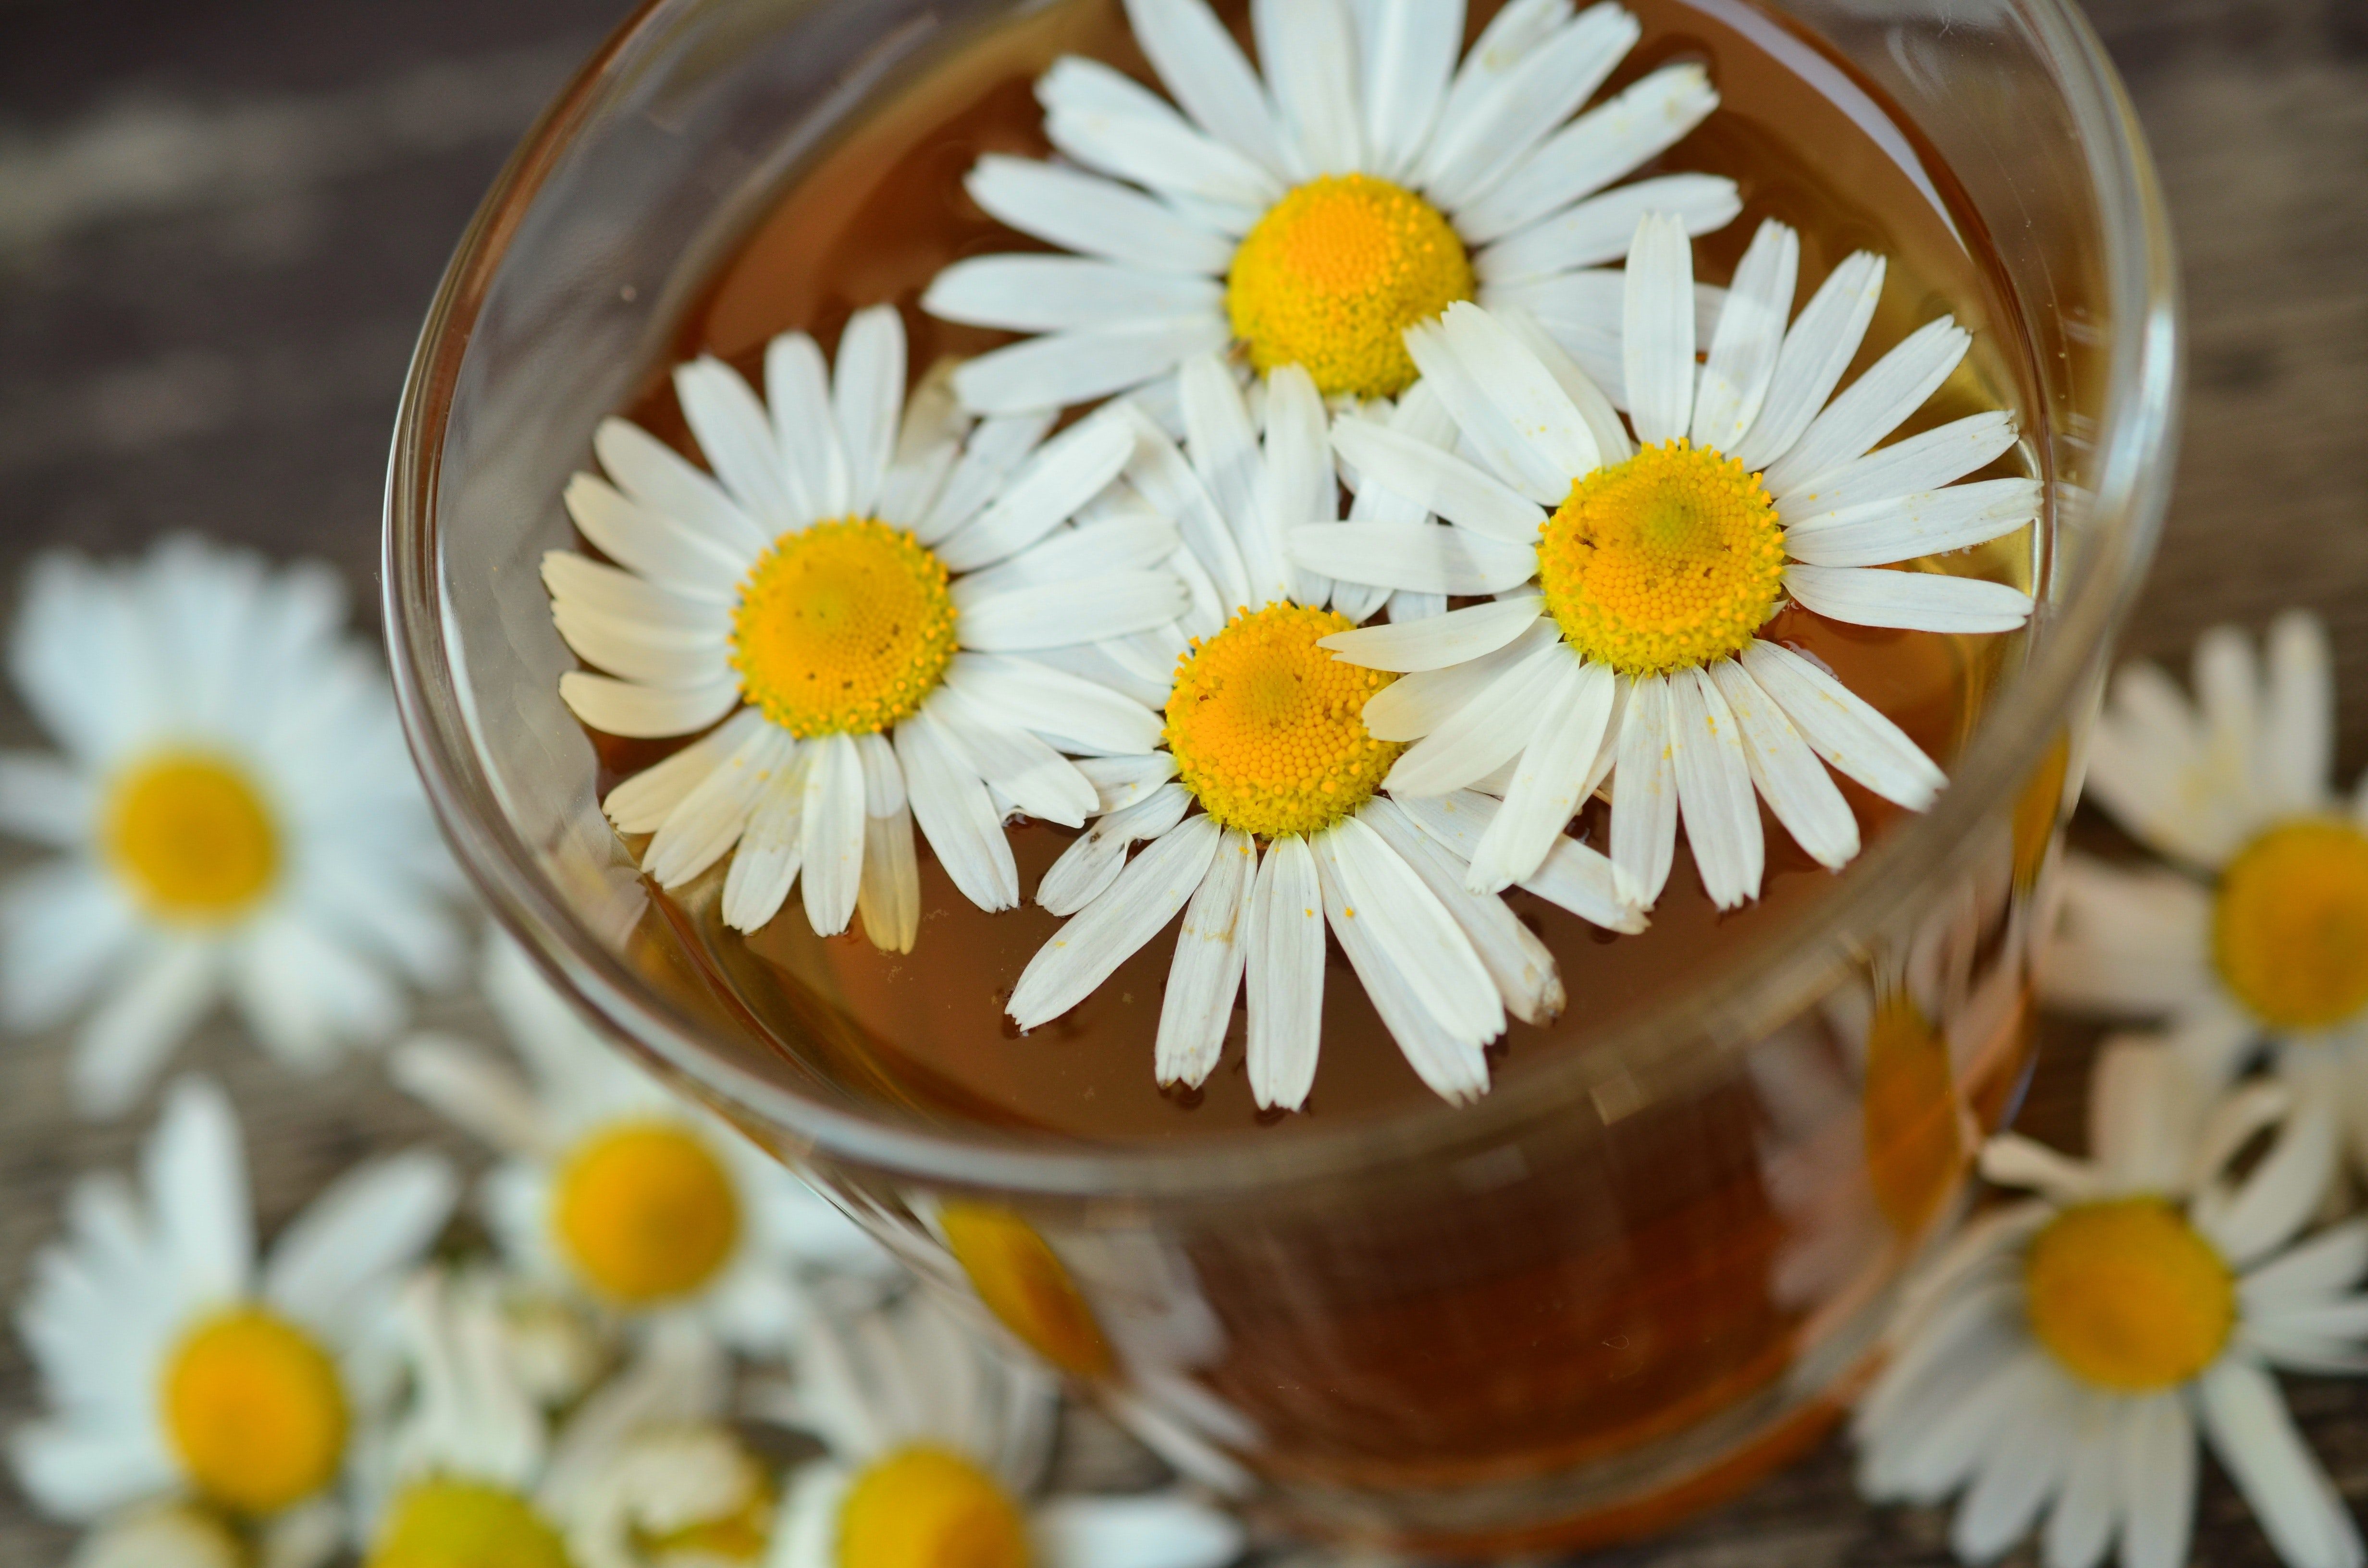 Chamomile Tea Can Silently Help You With Your New Year Weight Loss Resolutions